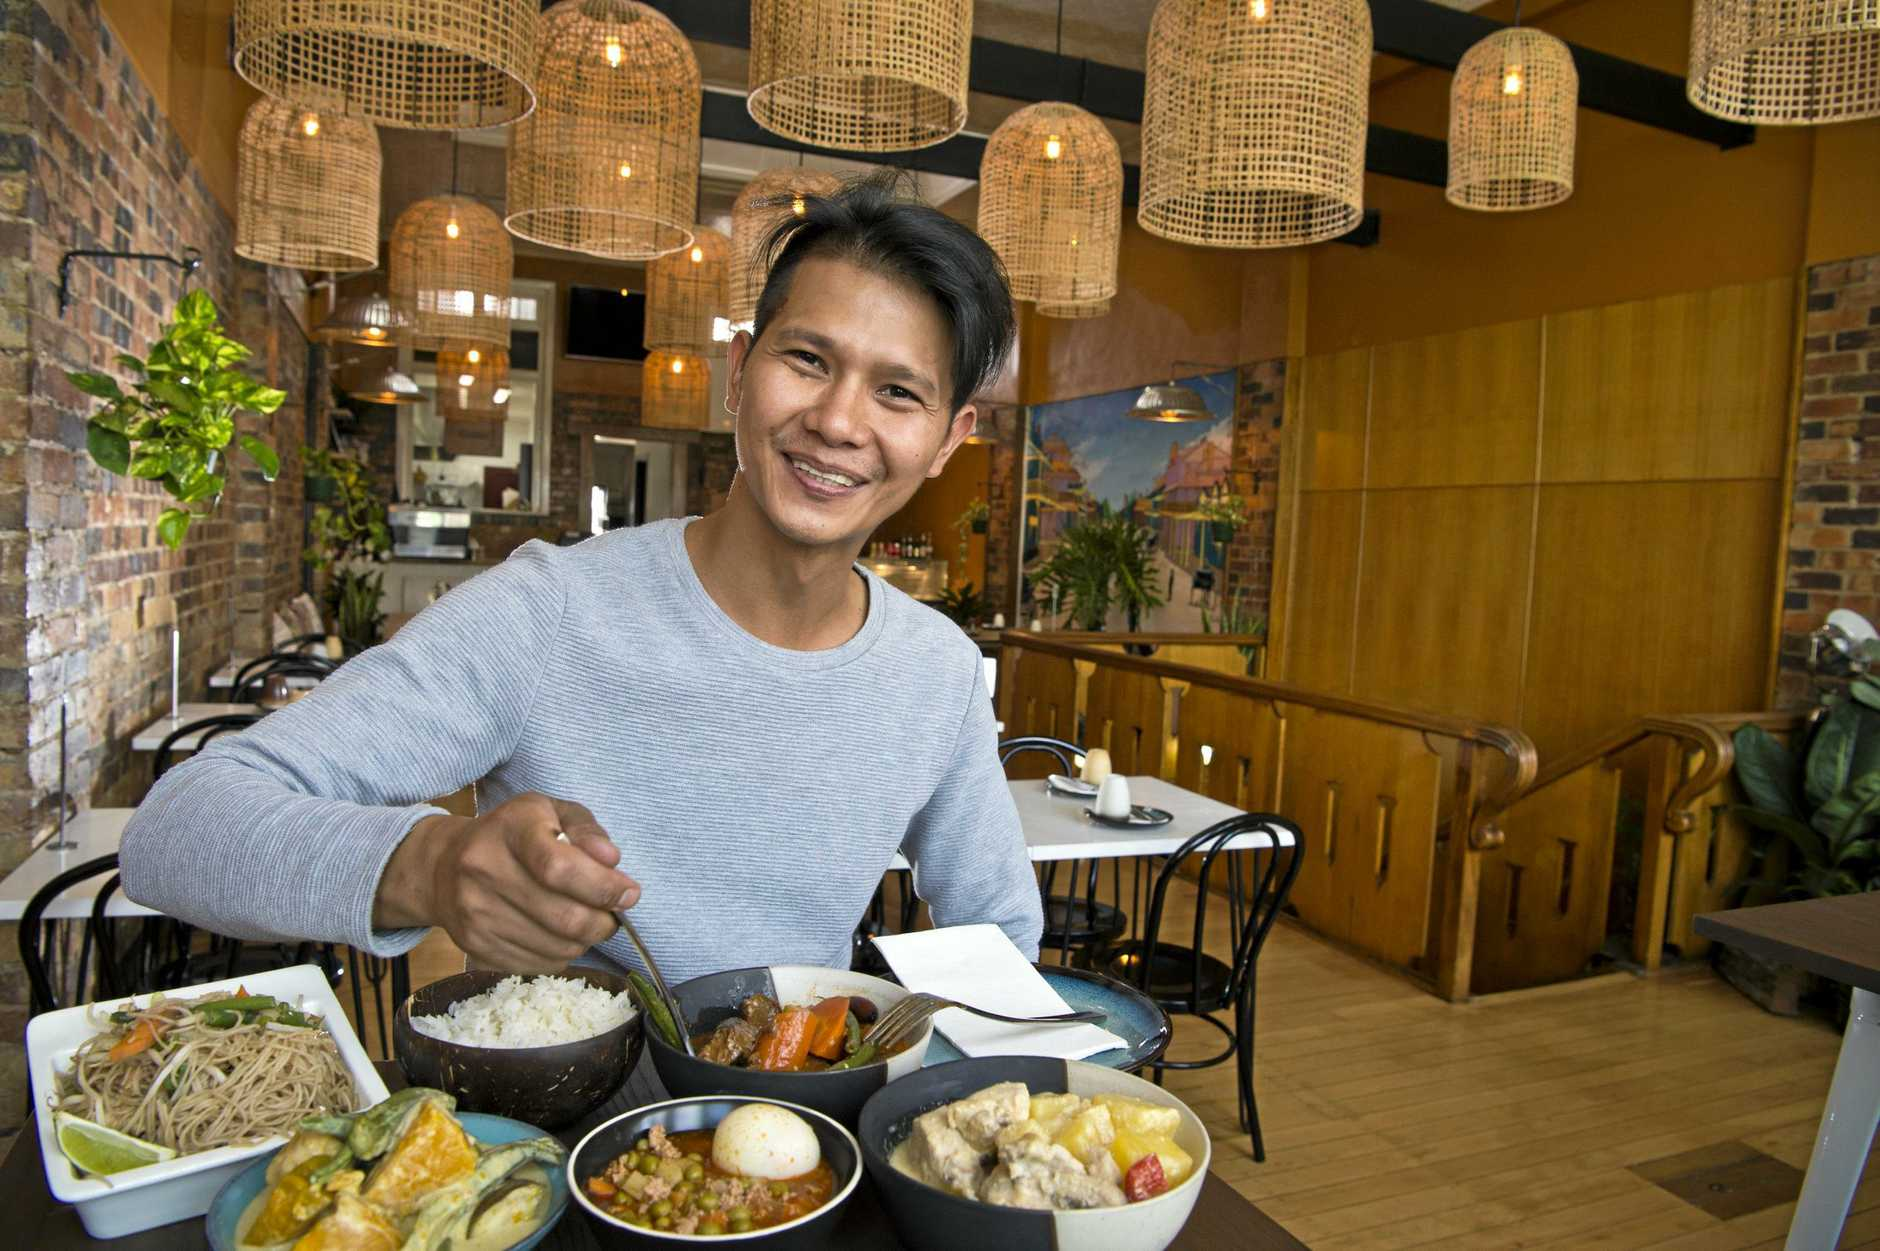 TURO TURO: Kusina ATBP owner Raphael John de Paula is thrilled to re-launch his restaurant.